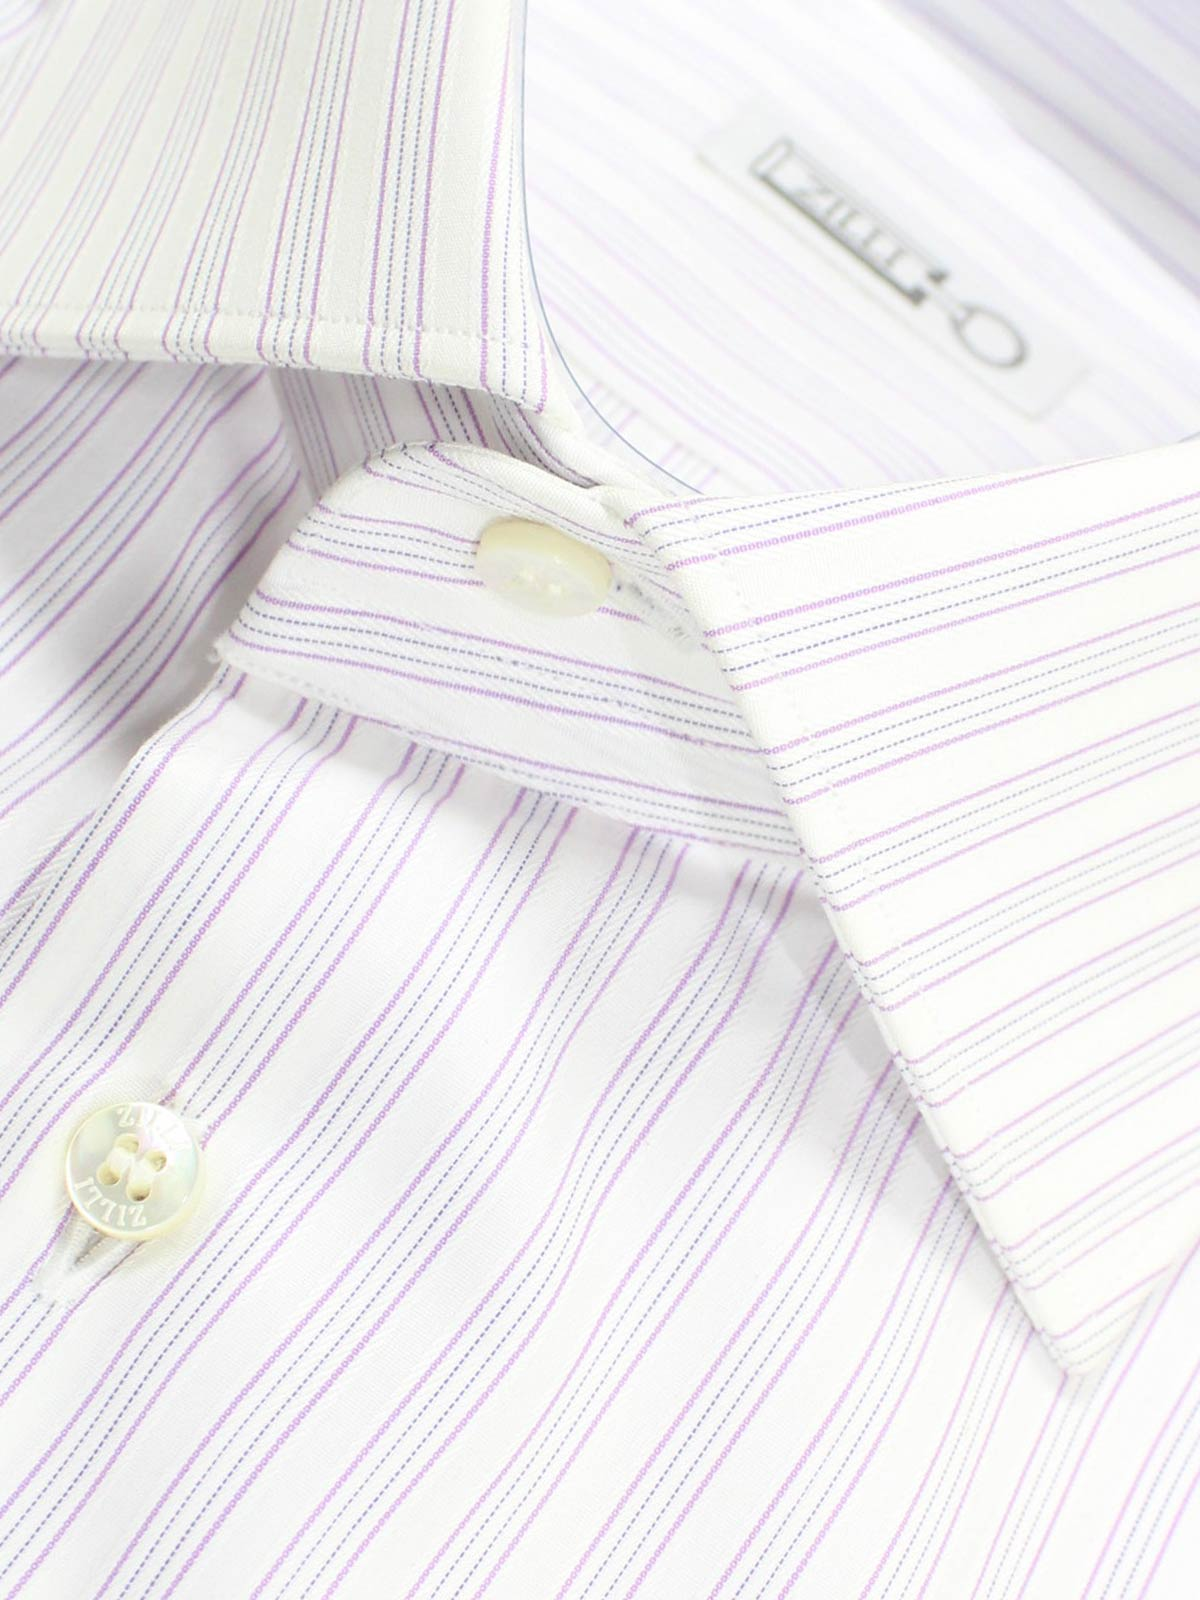 Zilli Dress Shirt White Lilac Stripes